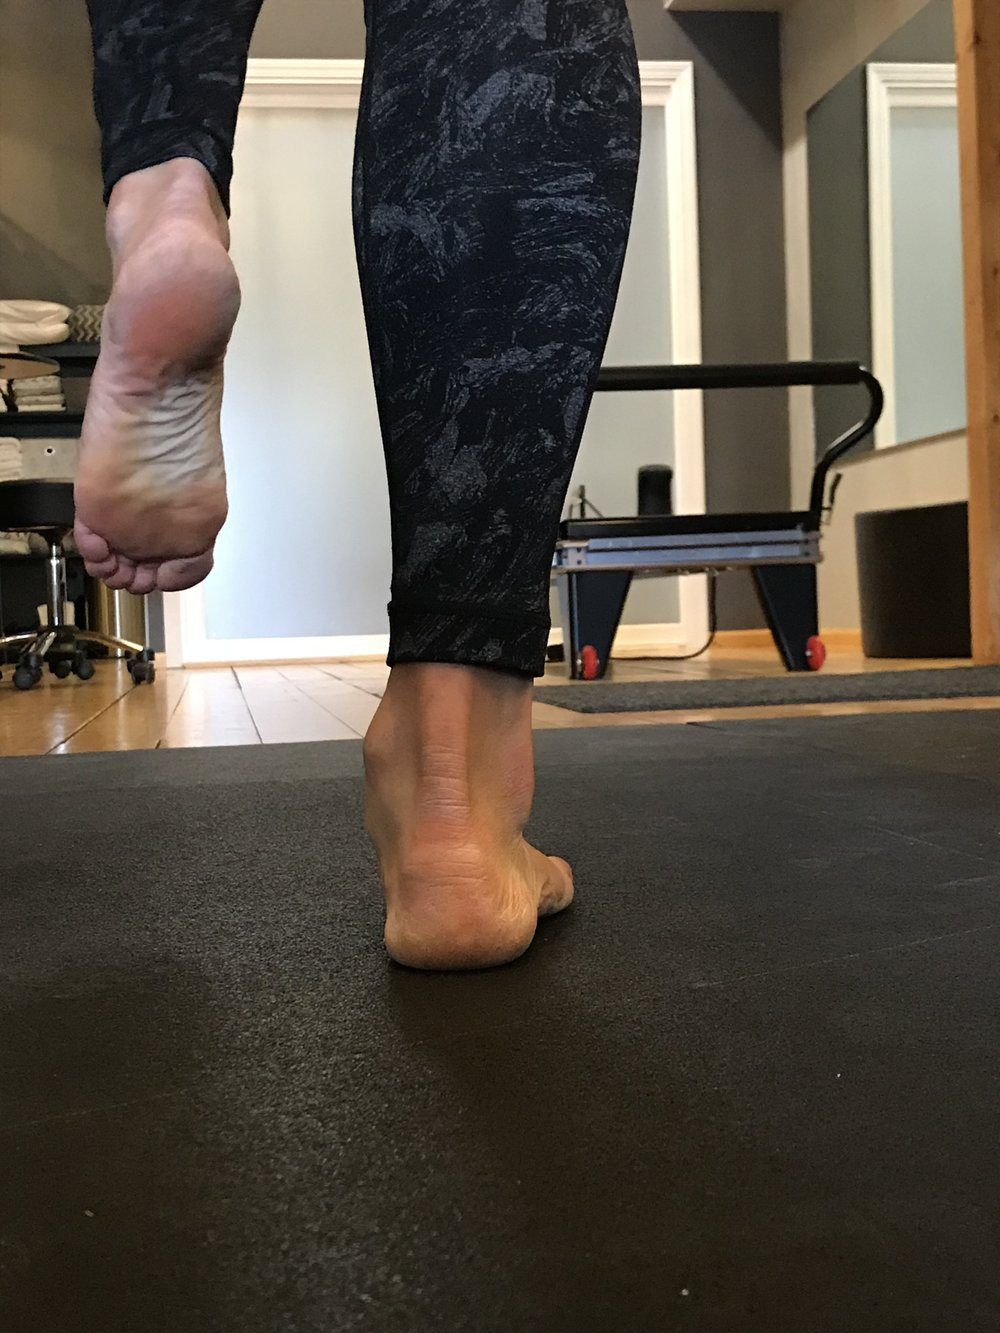 Collapse of the medial longitudinal arch places excess stress on the plantar fascia